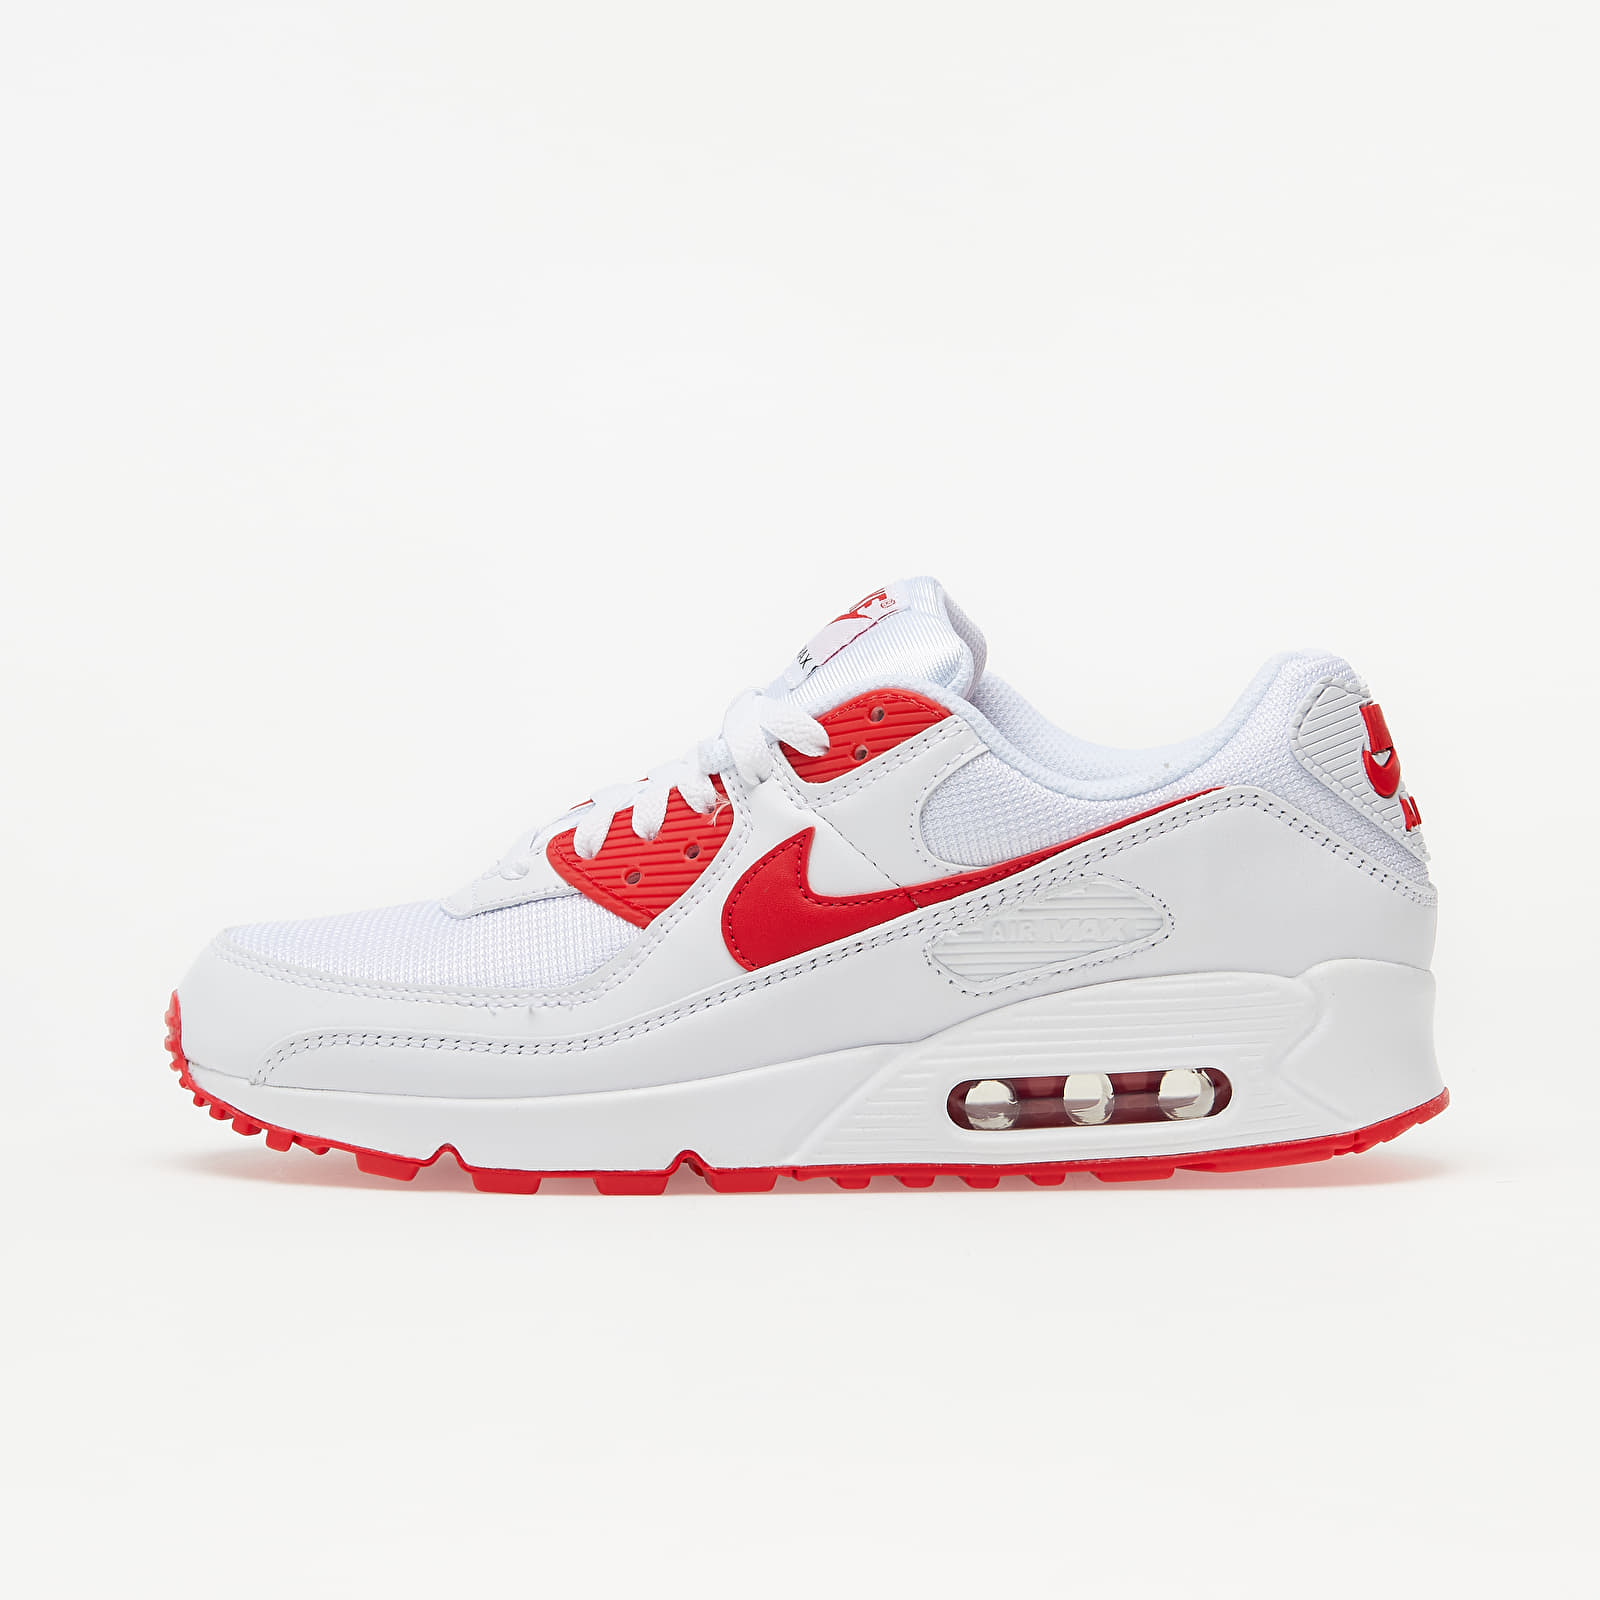 Nike Air Max 90 White/ Hyper Red-Black EUR 41